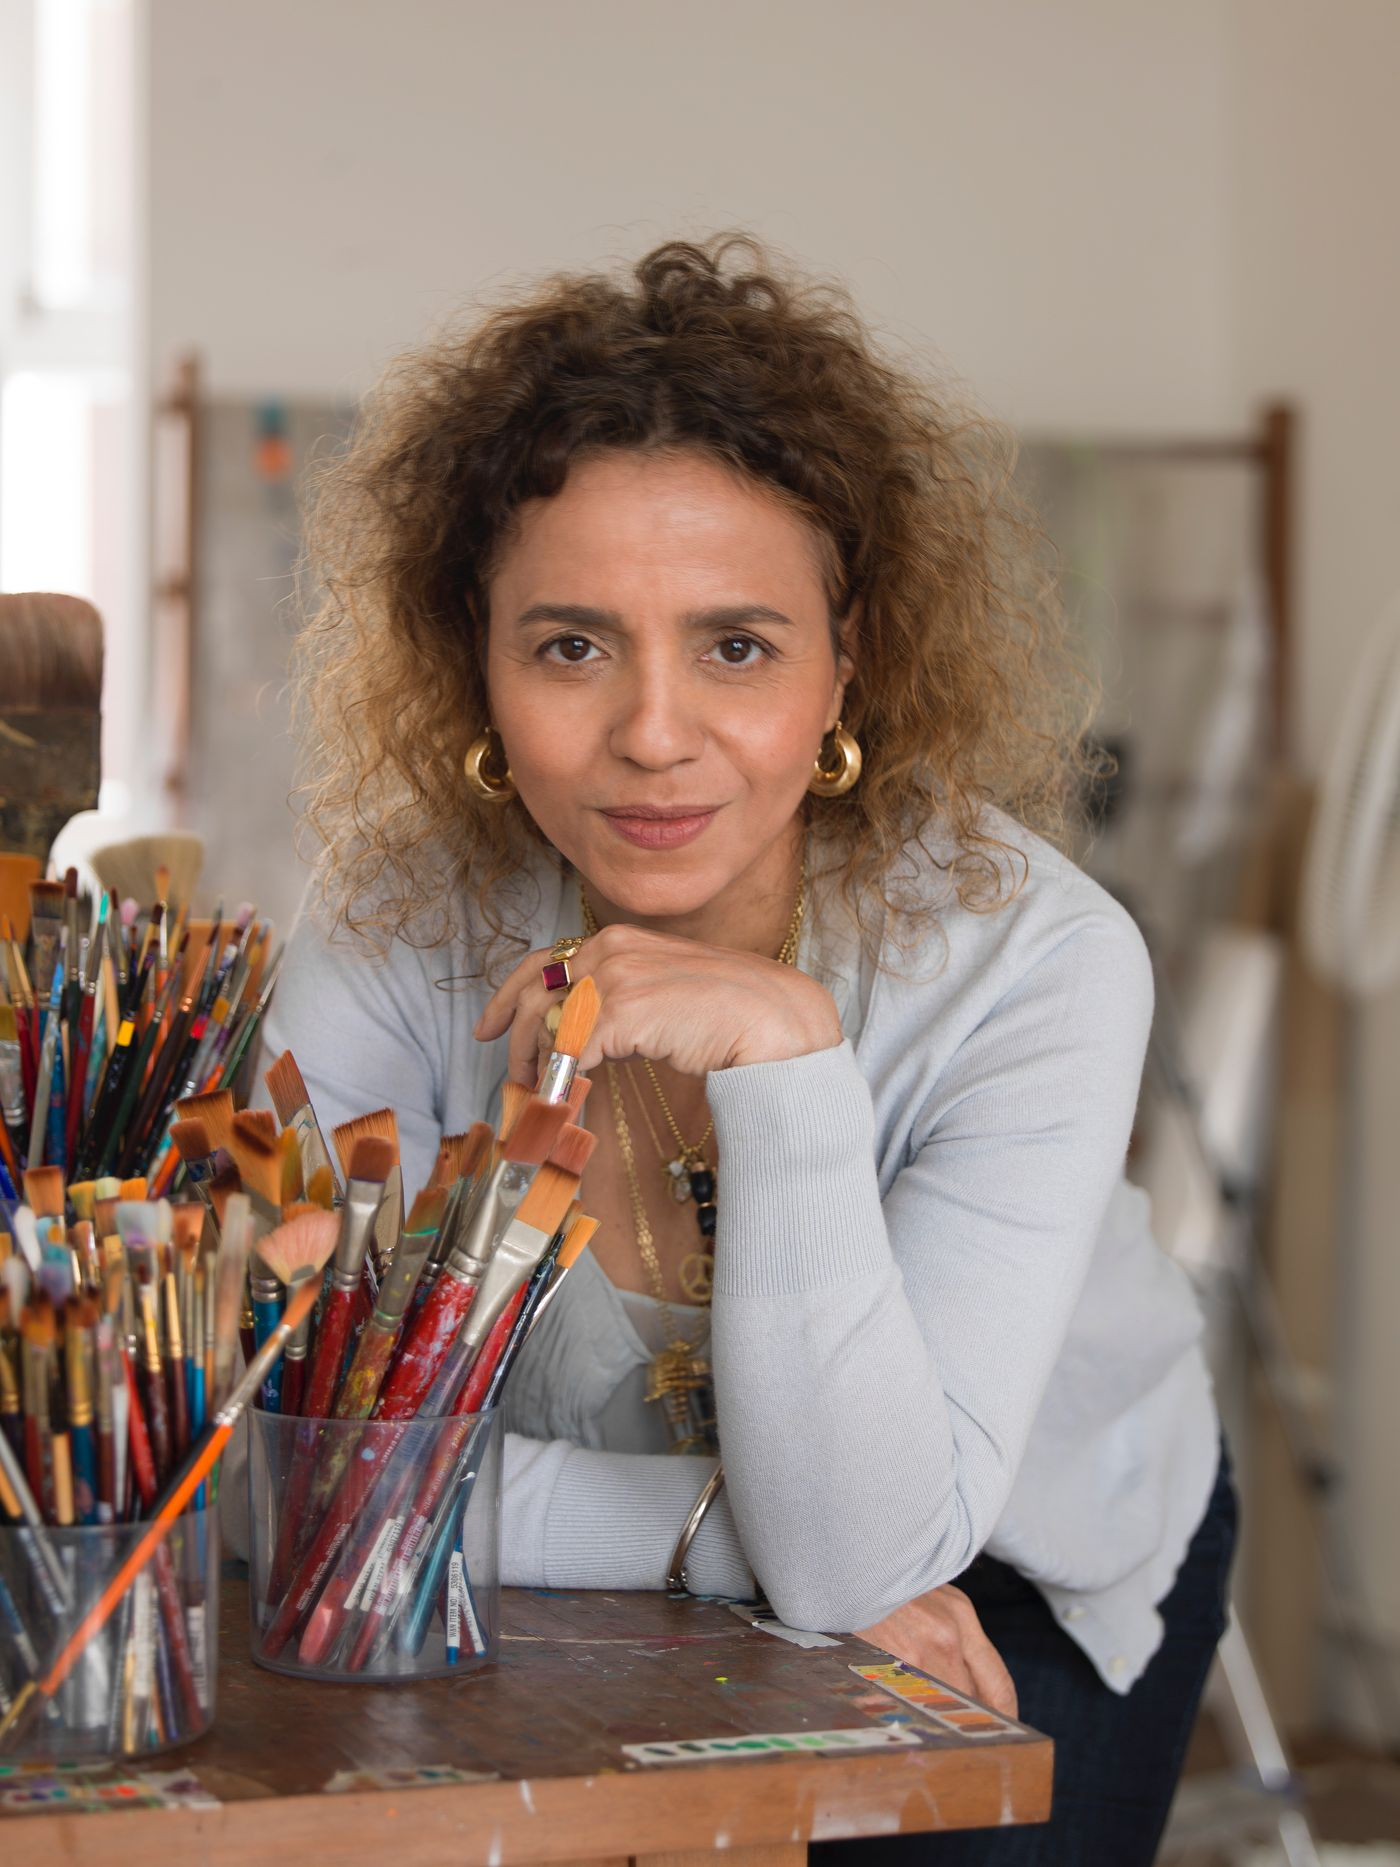 Regional Director Candida Sodre sat down with the Rio de Janeiro-based artist to discuss the artist's multidisciplinary practice and her upcoming exhibitions.